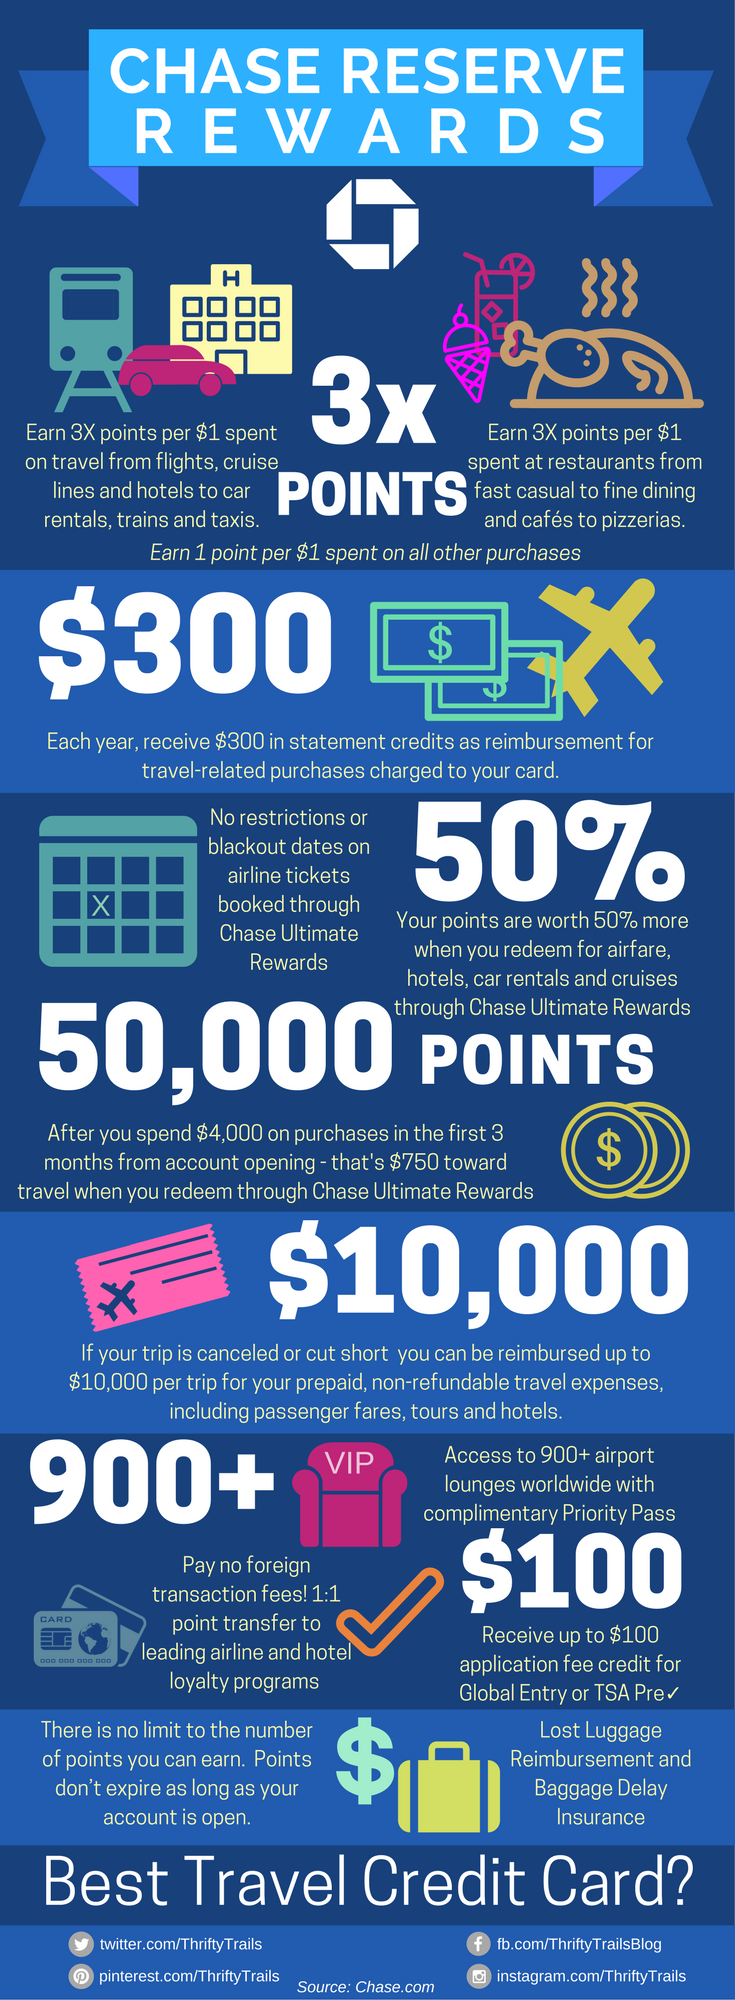 Chase Sapphire Reserve: Best Travel Credit Card Infographic